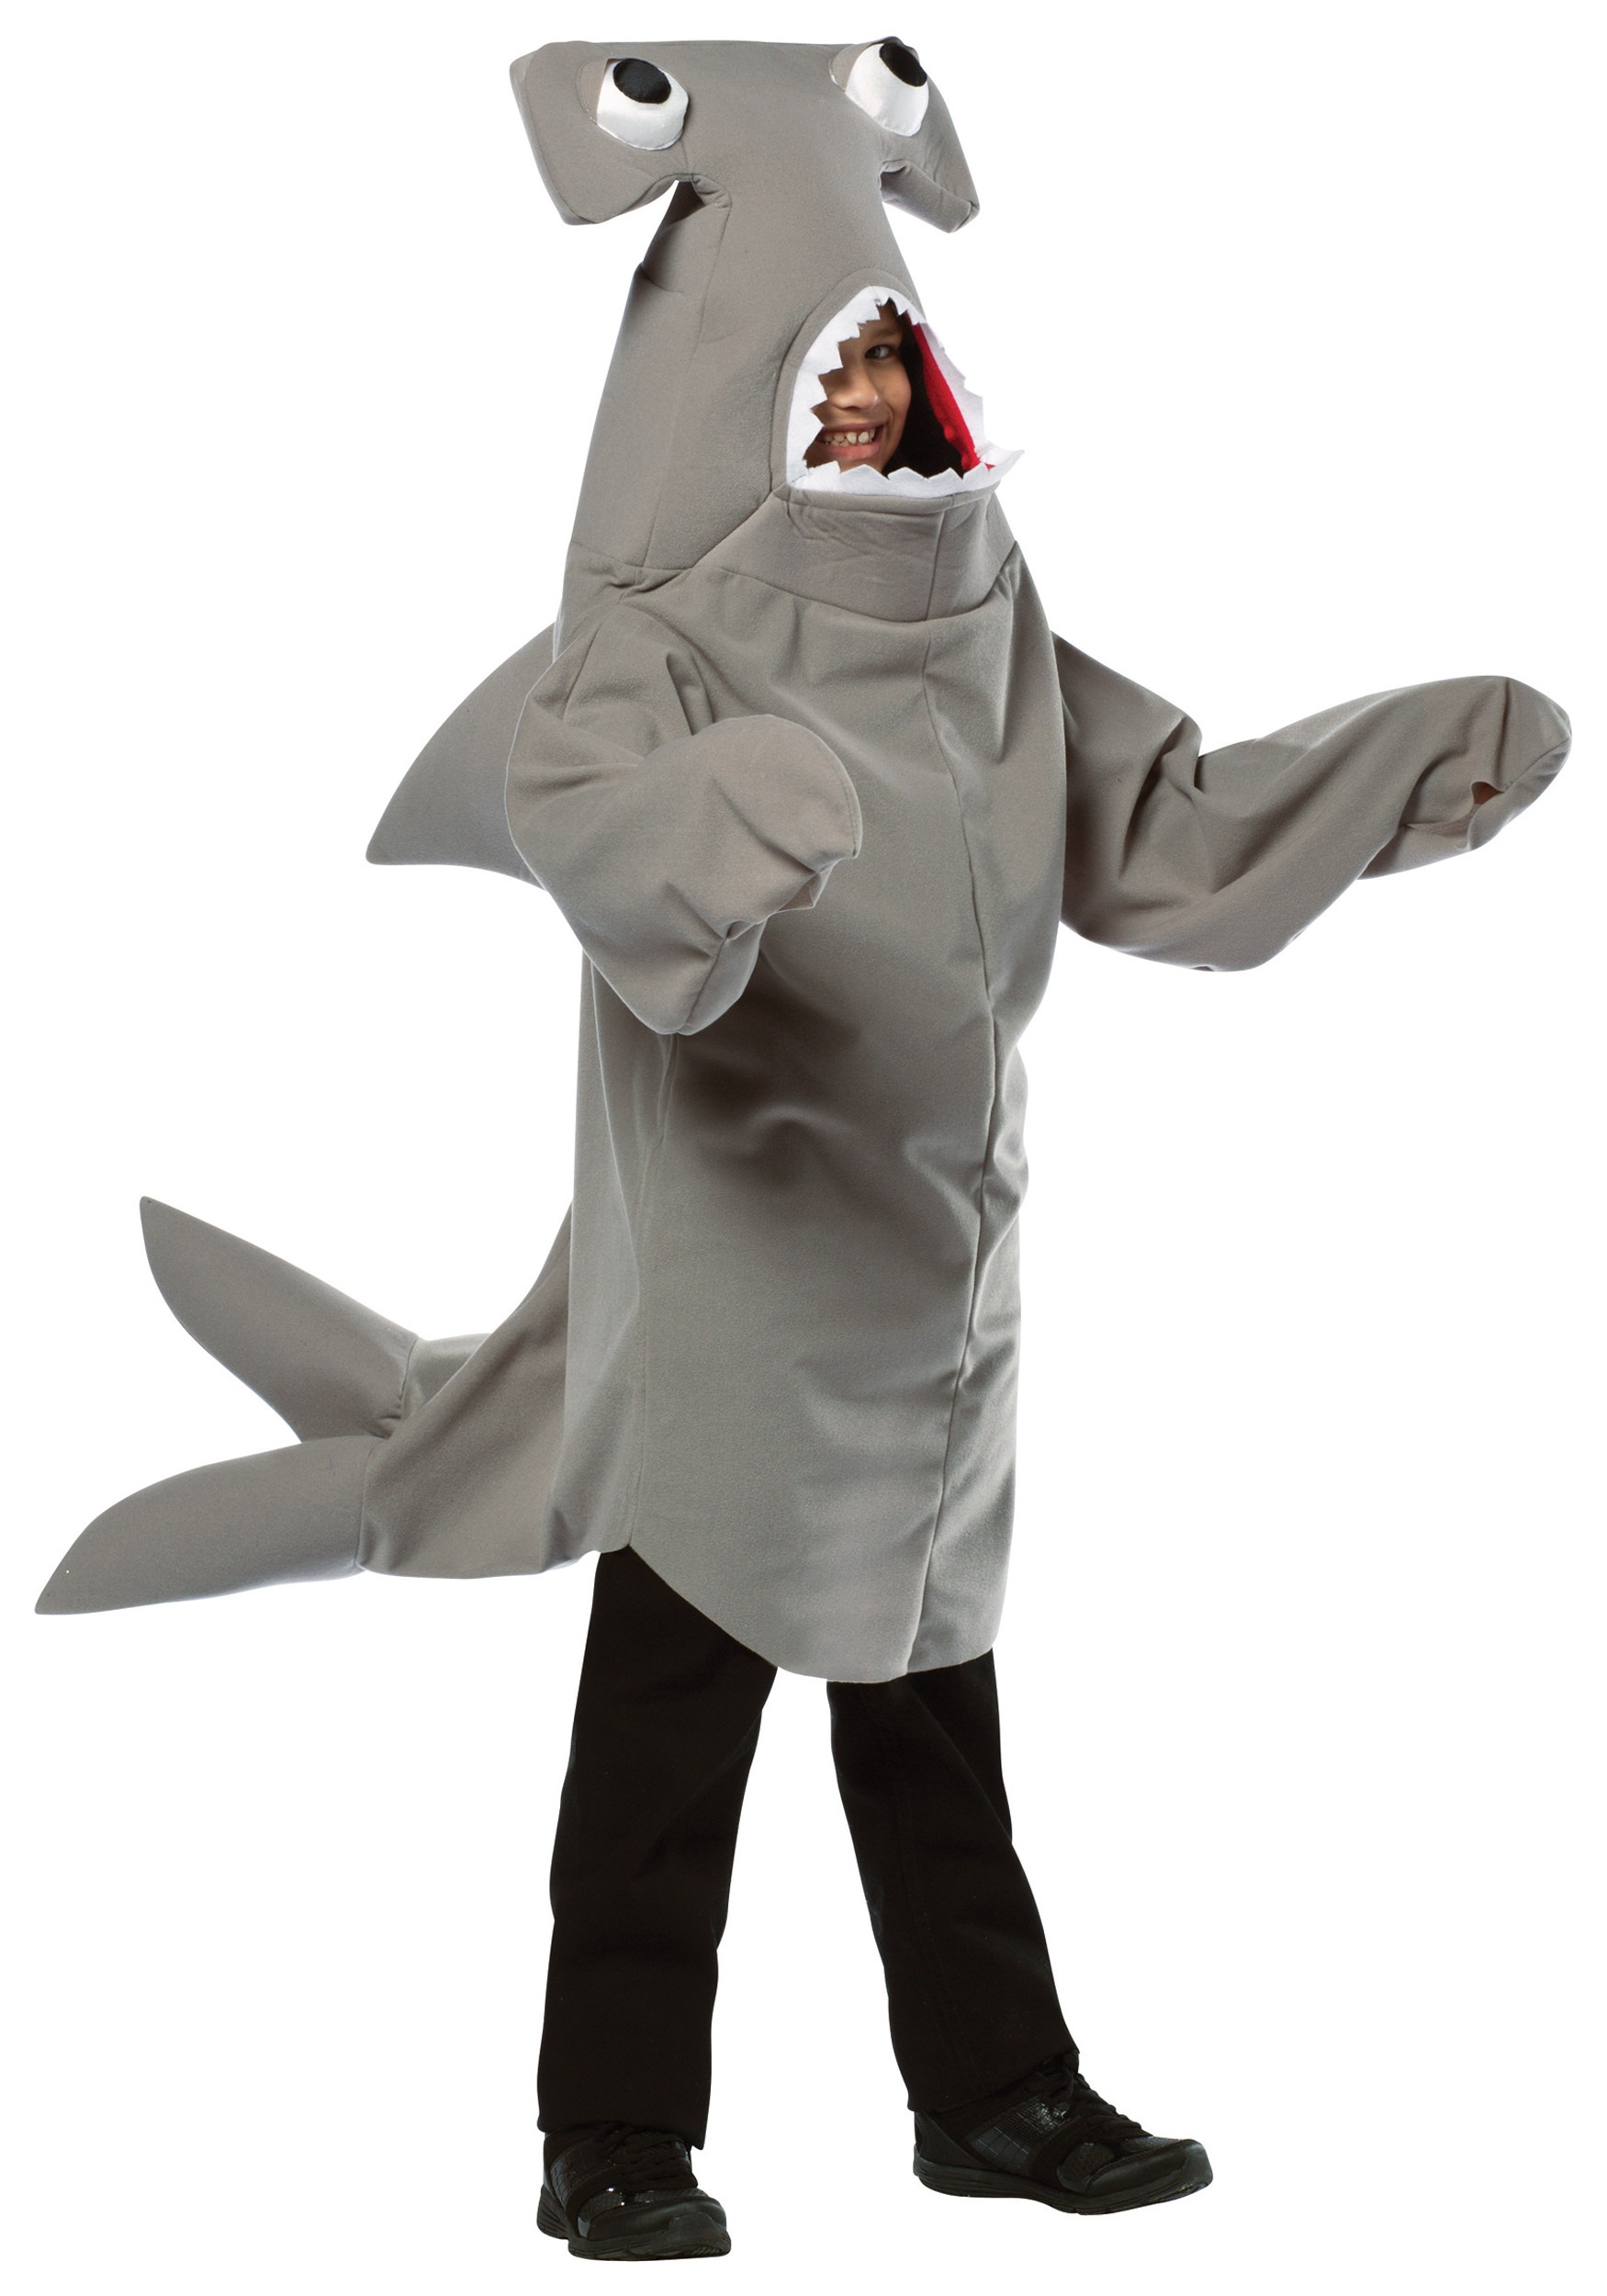 Hammerhead Shark Costume  sc 1 st  Halloween Costumes & Sea Creature Costumes - HalloweenCostumes.com